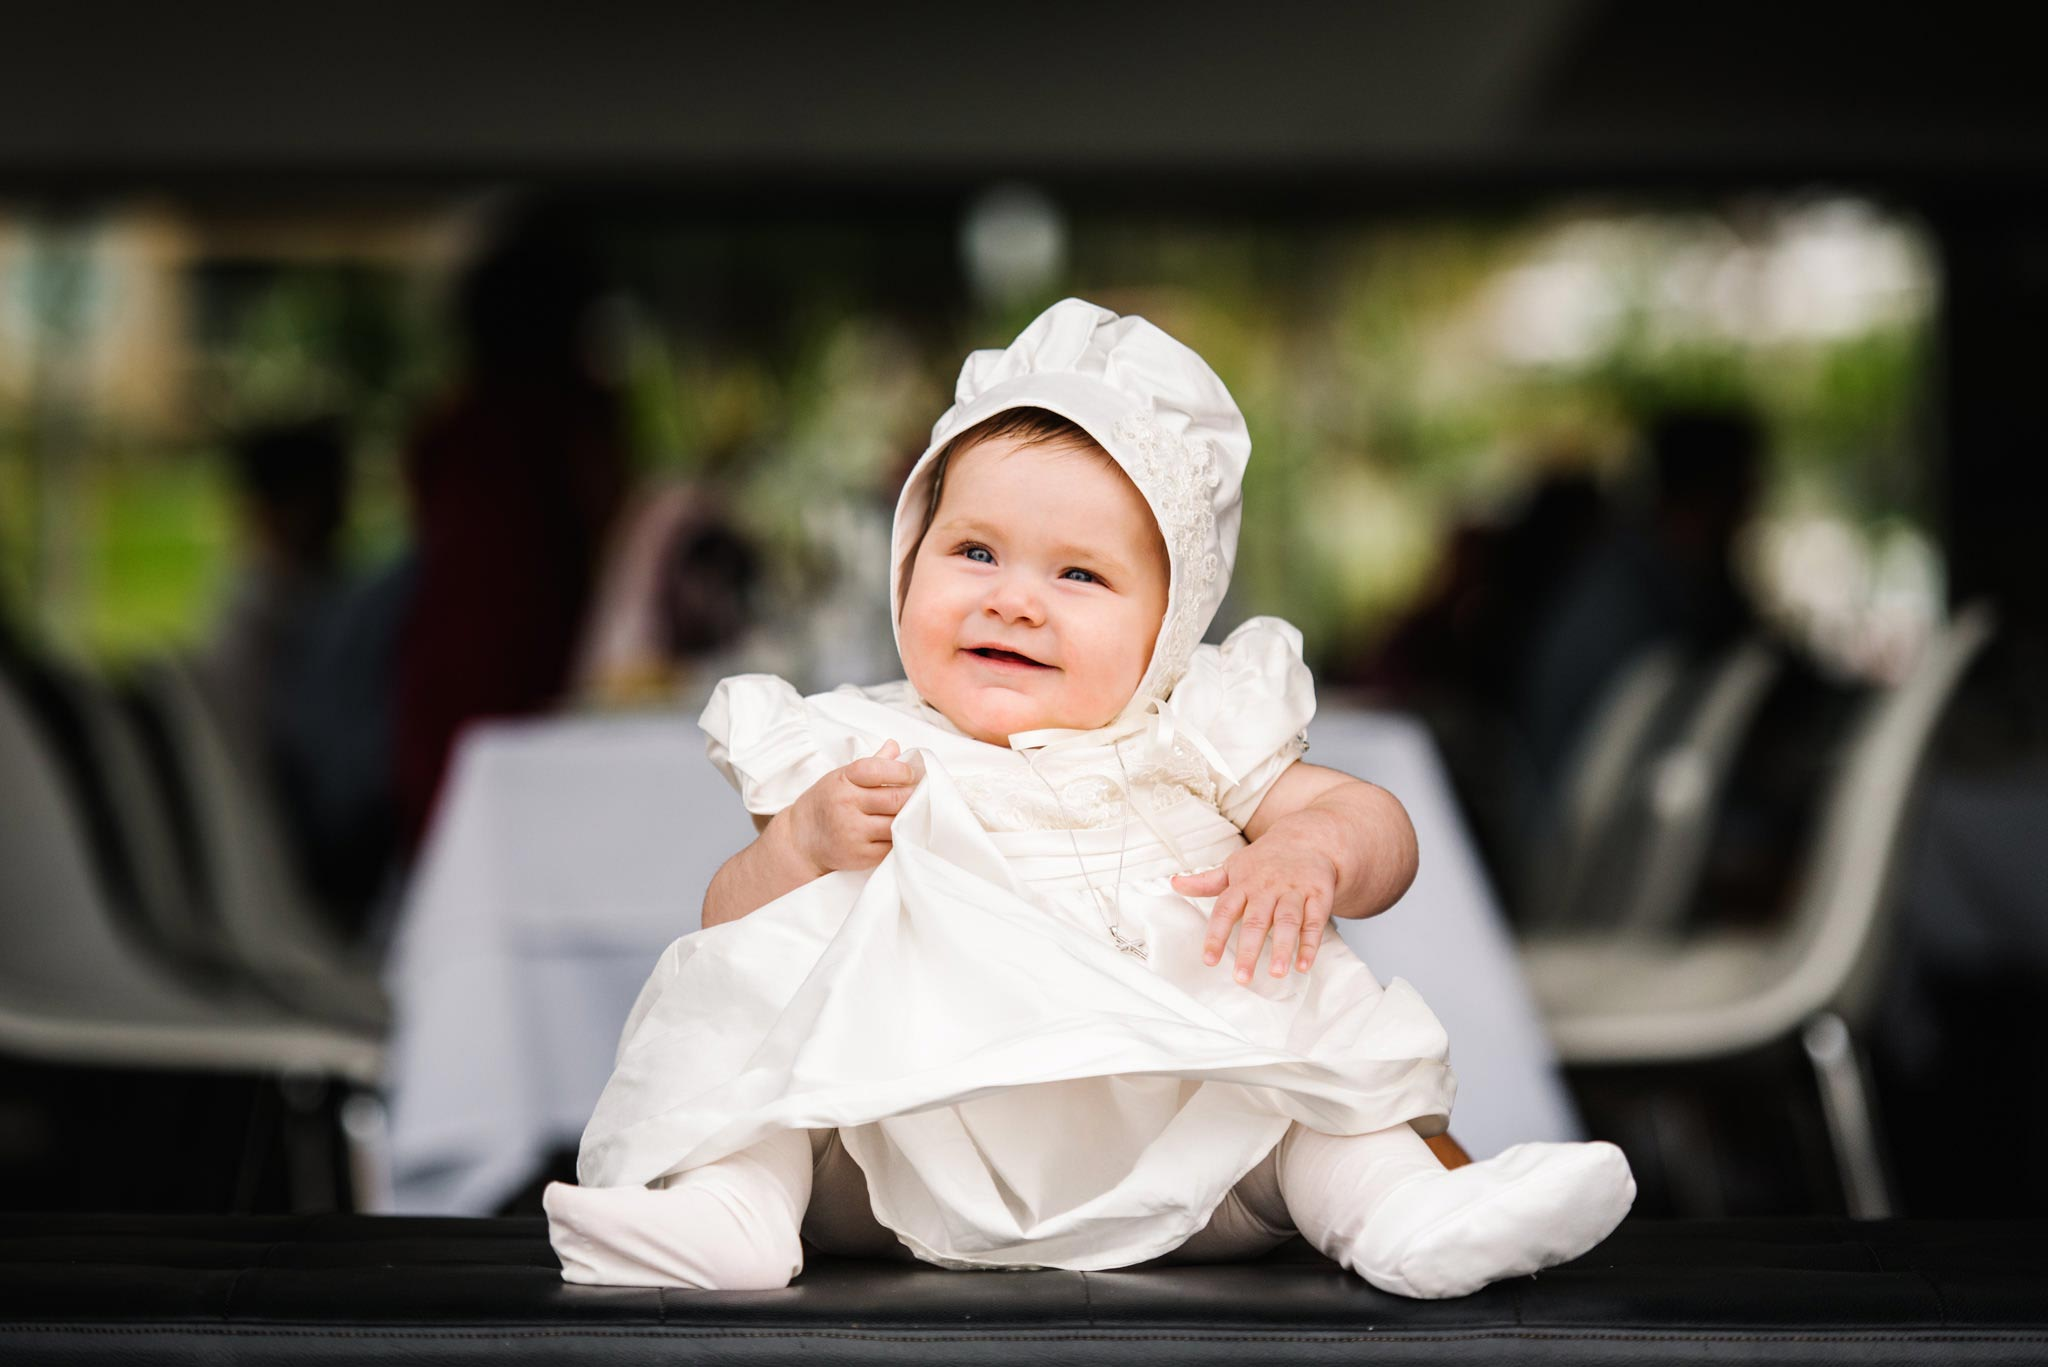 Baby in christening gown and bonnet at Ecco Drummoyne